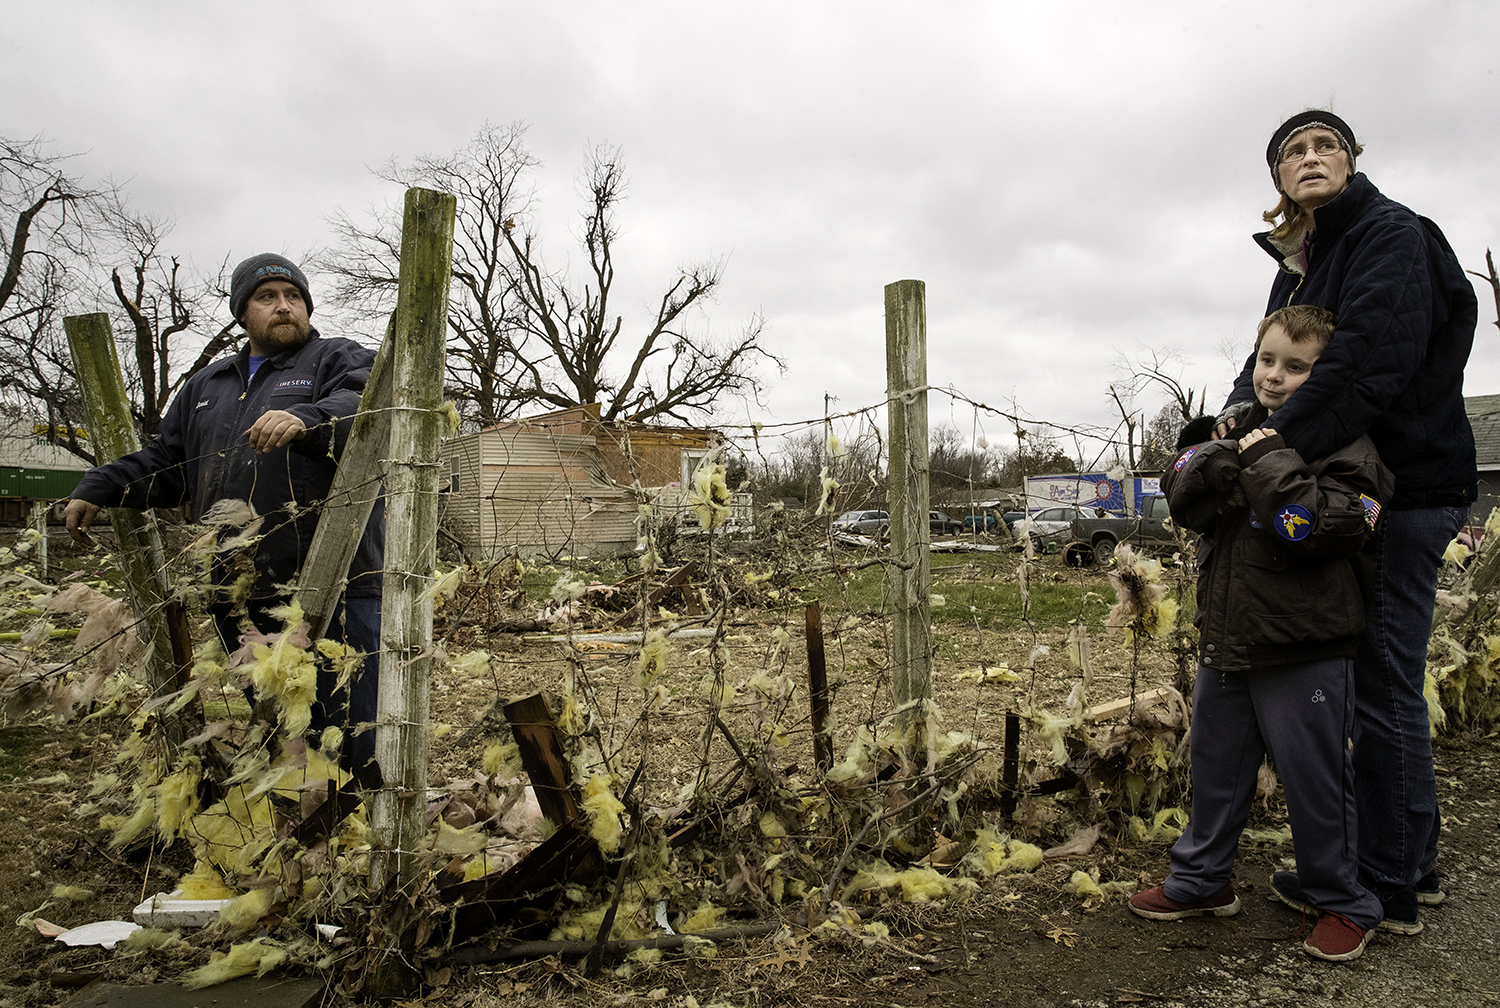 David Bowers, left, his son David and wife Tammy gather at the edge of their property in Taylorville after assessing the tornado damage to their home Sunday, Dec. 2, 2018. The family took shelter in the basement while the storm tore the roof completely off their house. [Ted Schurter/The State Journal-Register]